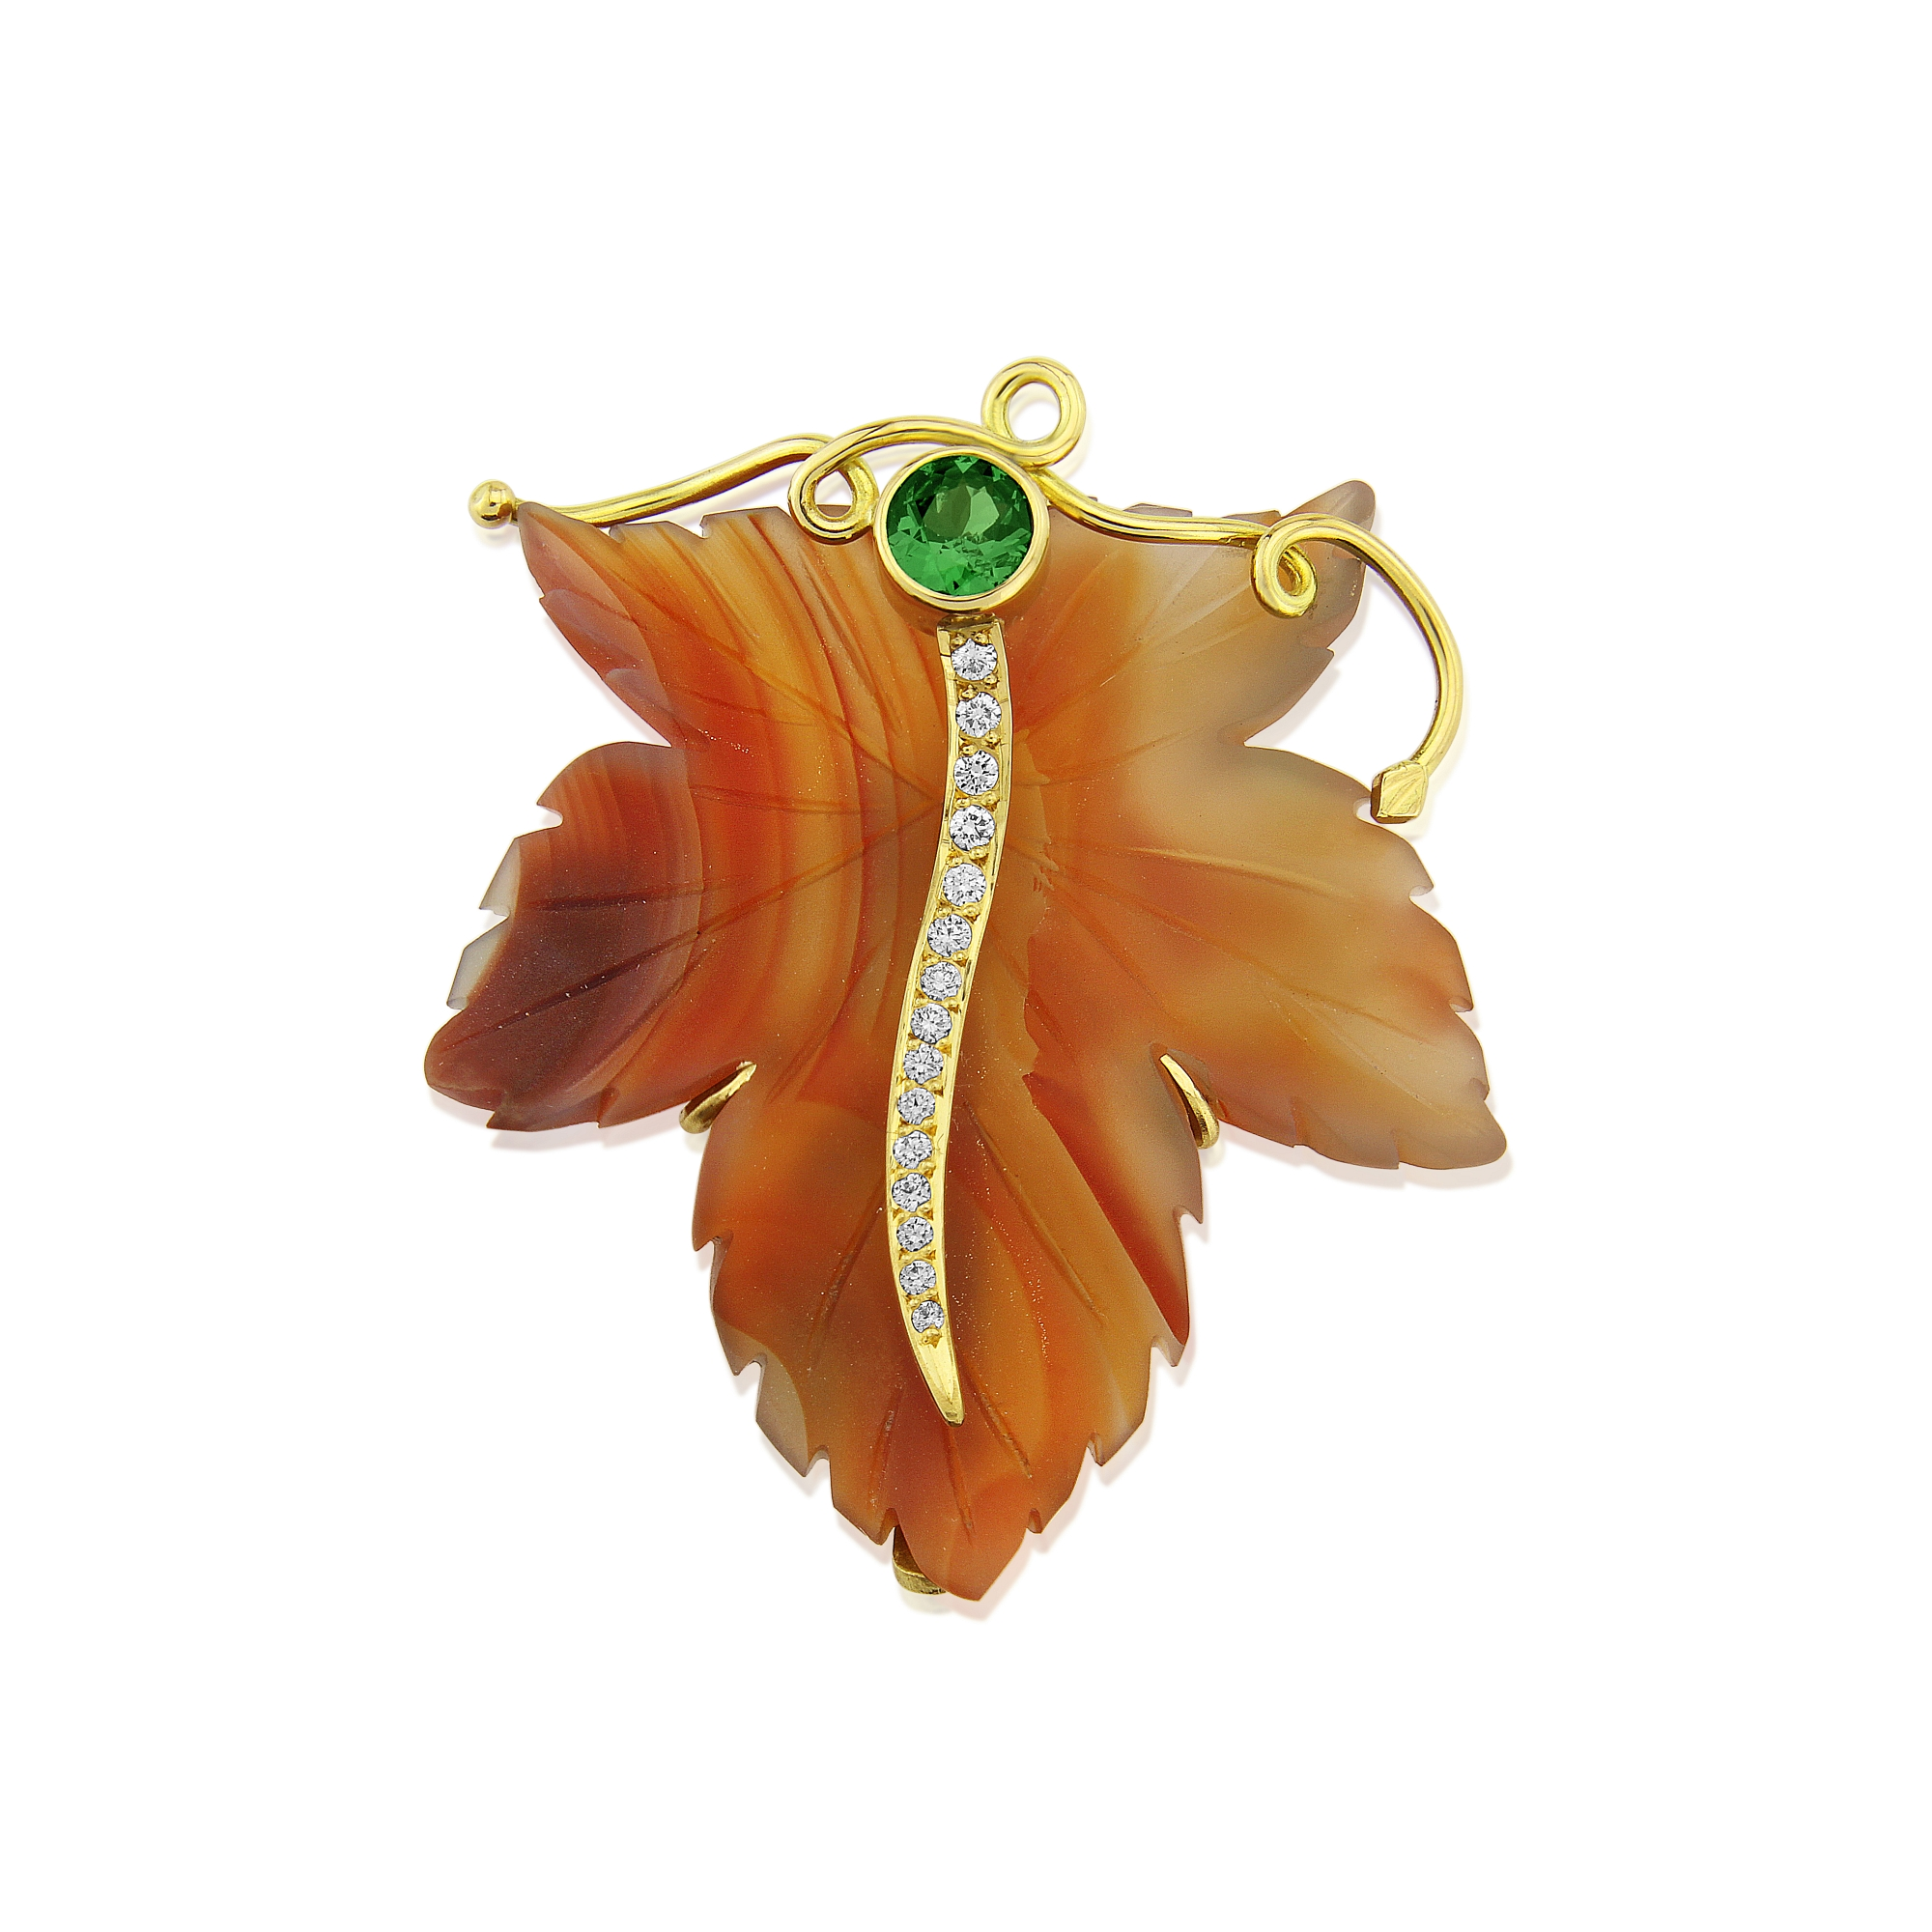 Top quality carved Agate leaf Brooch hand made in 18ct Gold and set with diamonds and a Tsavorite garnet,beautiful colours for the Autumn.